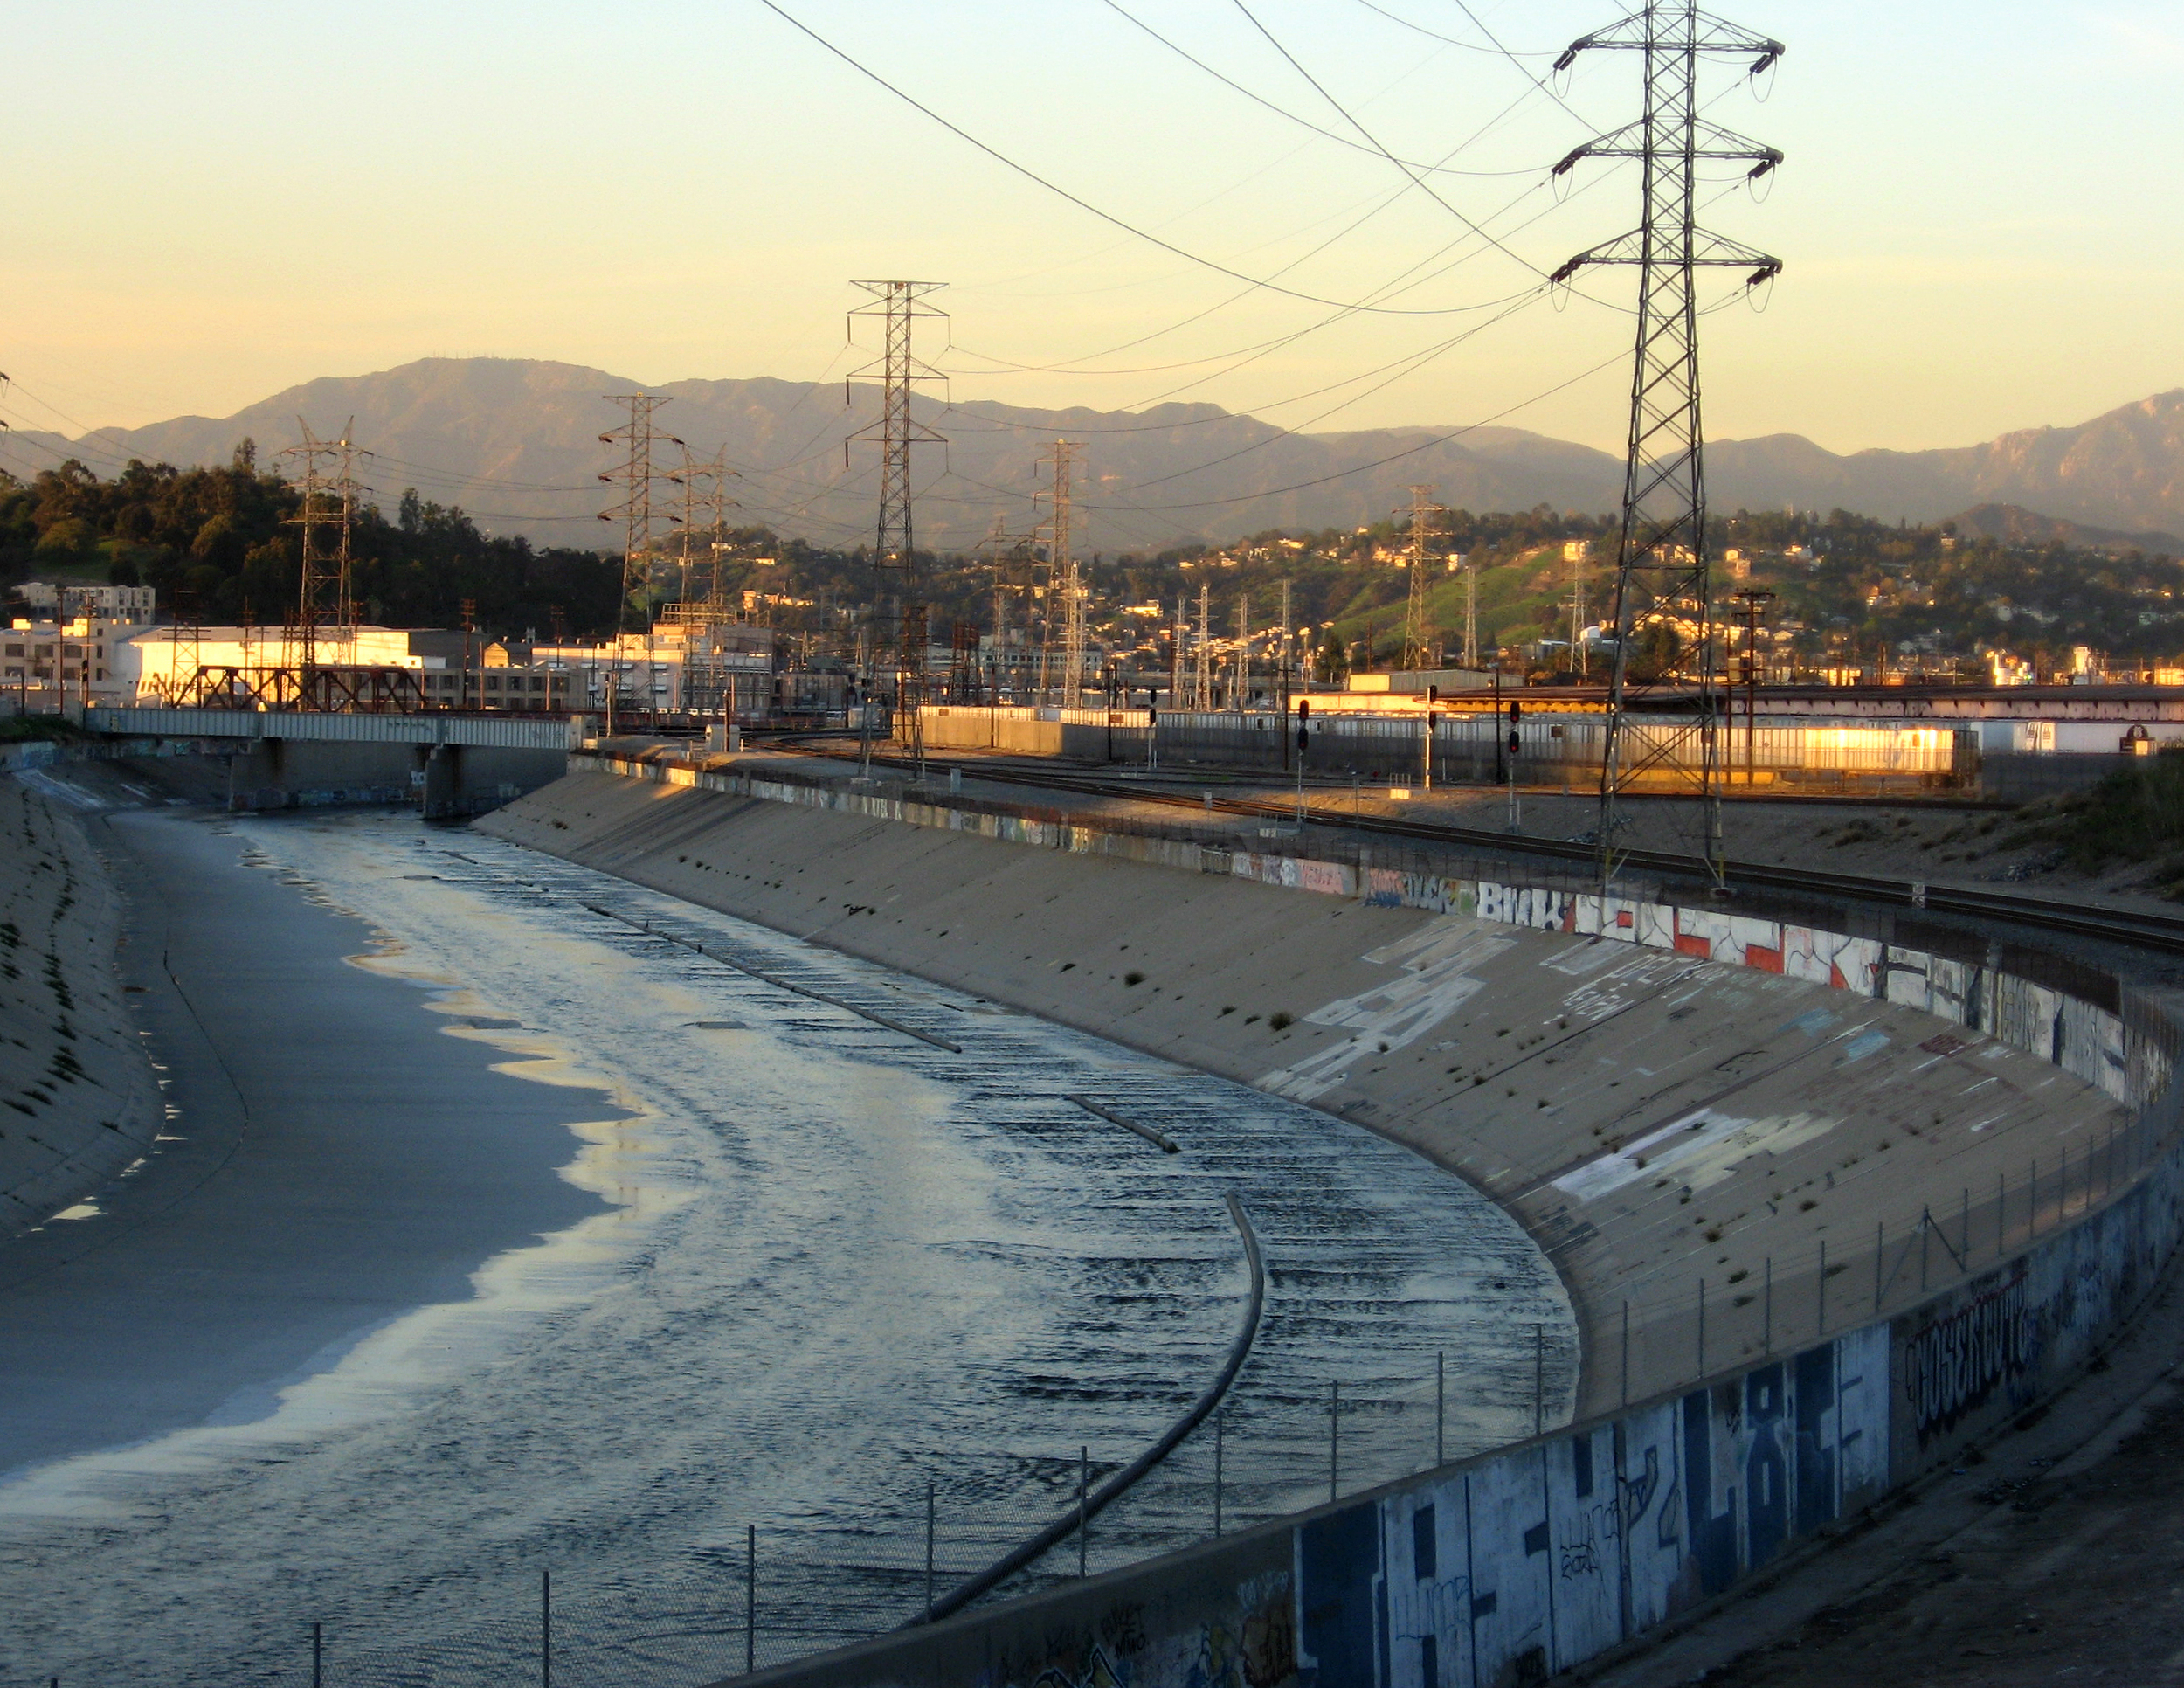 Reset. Restore. Renew. Several river projects intend to bring the Los Angeles River back to its former natural glory, while creating a new promise for the future.